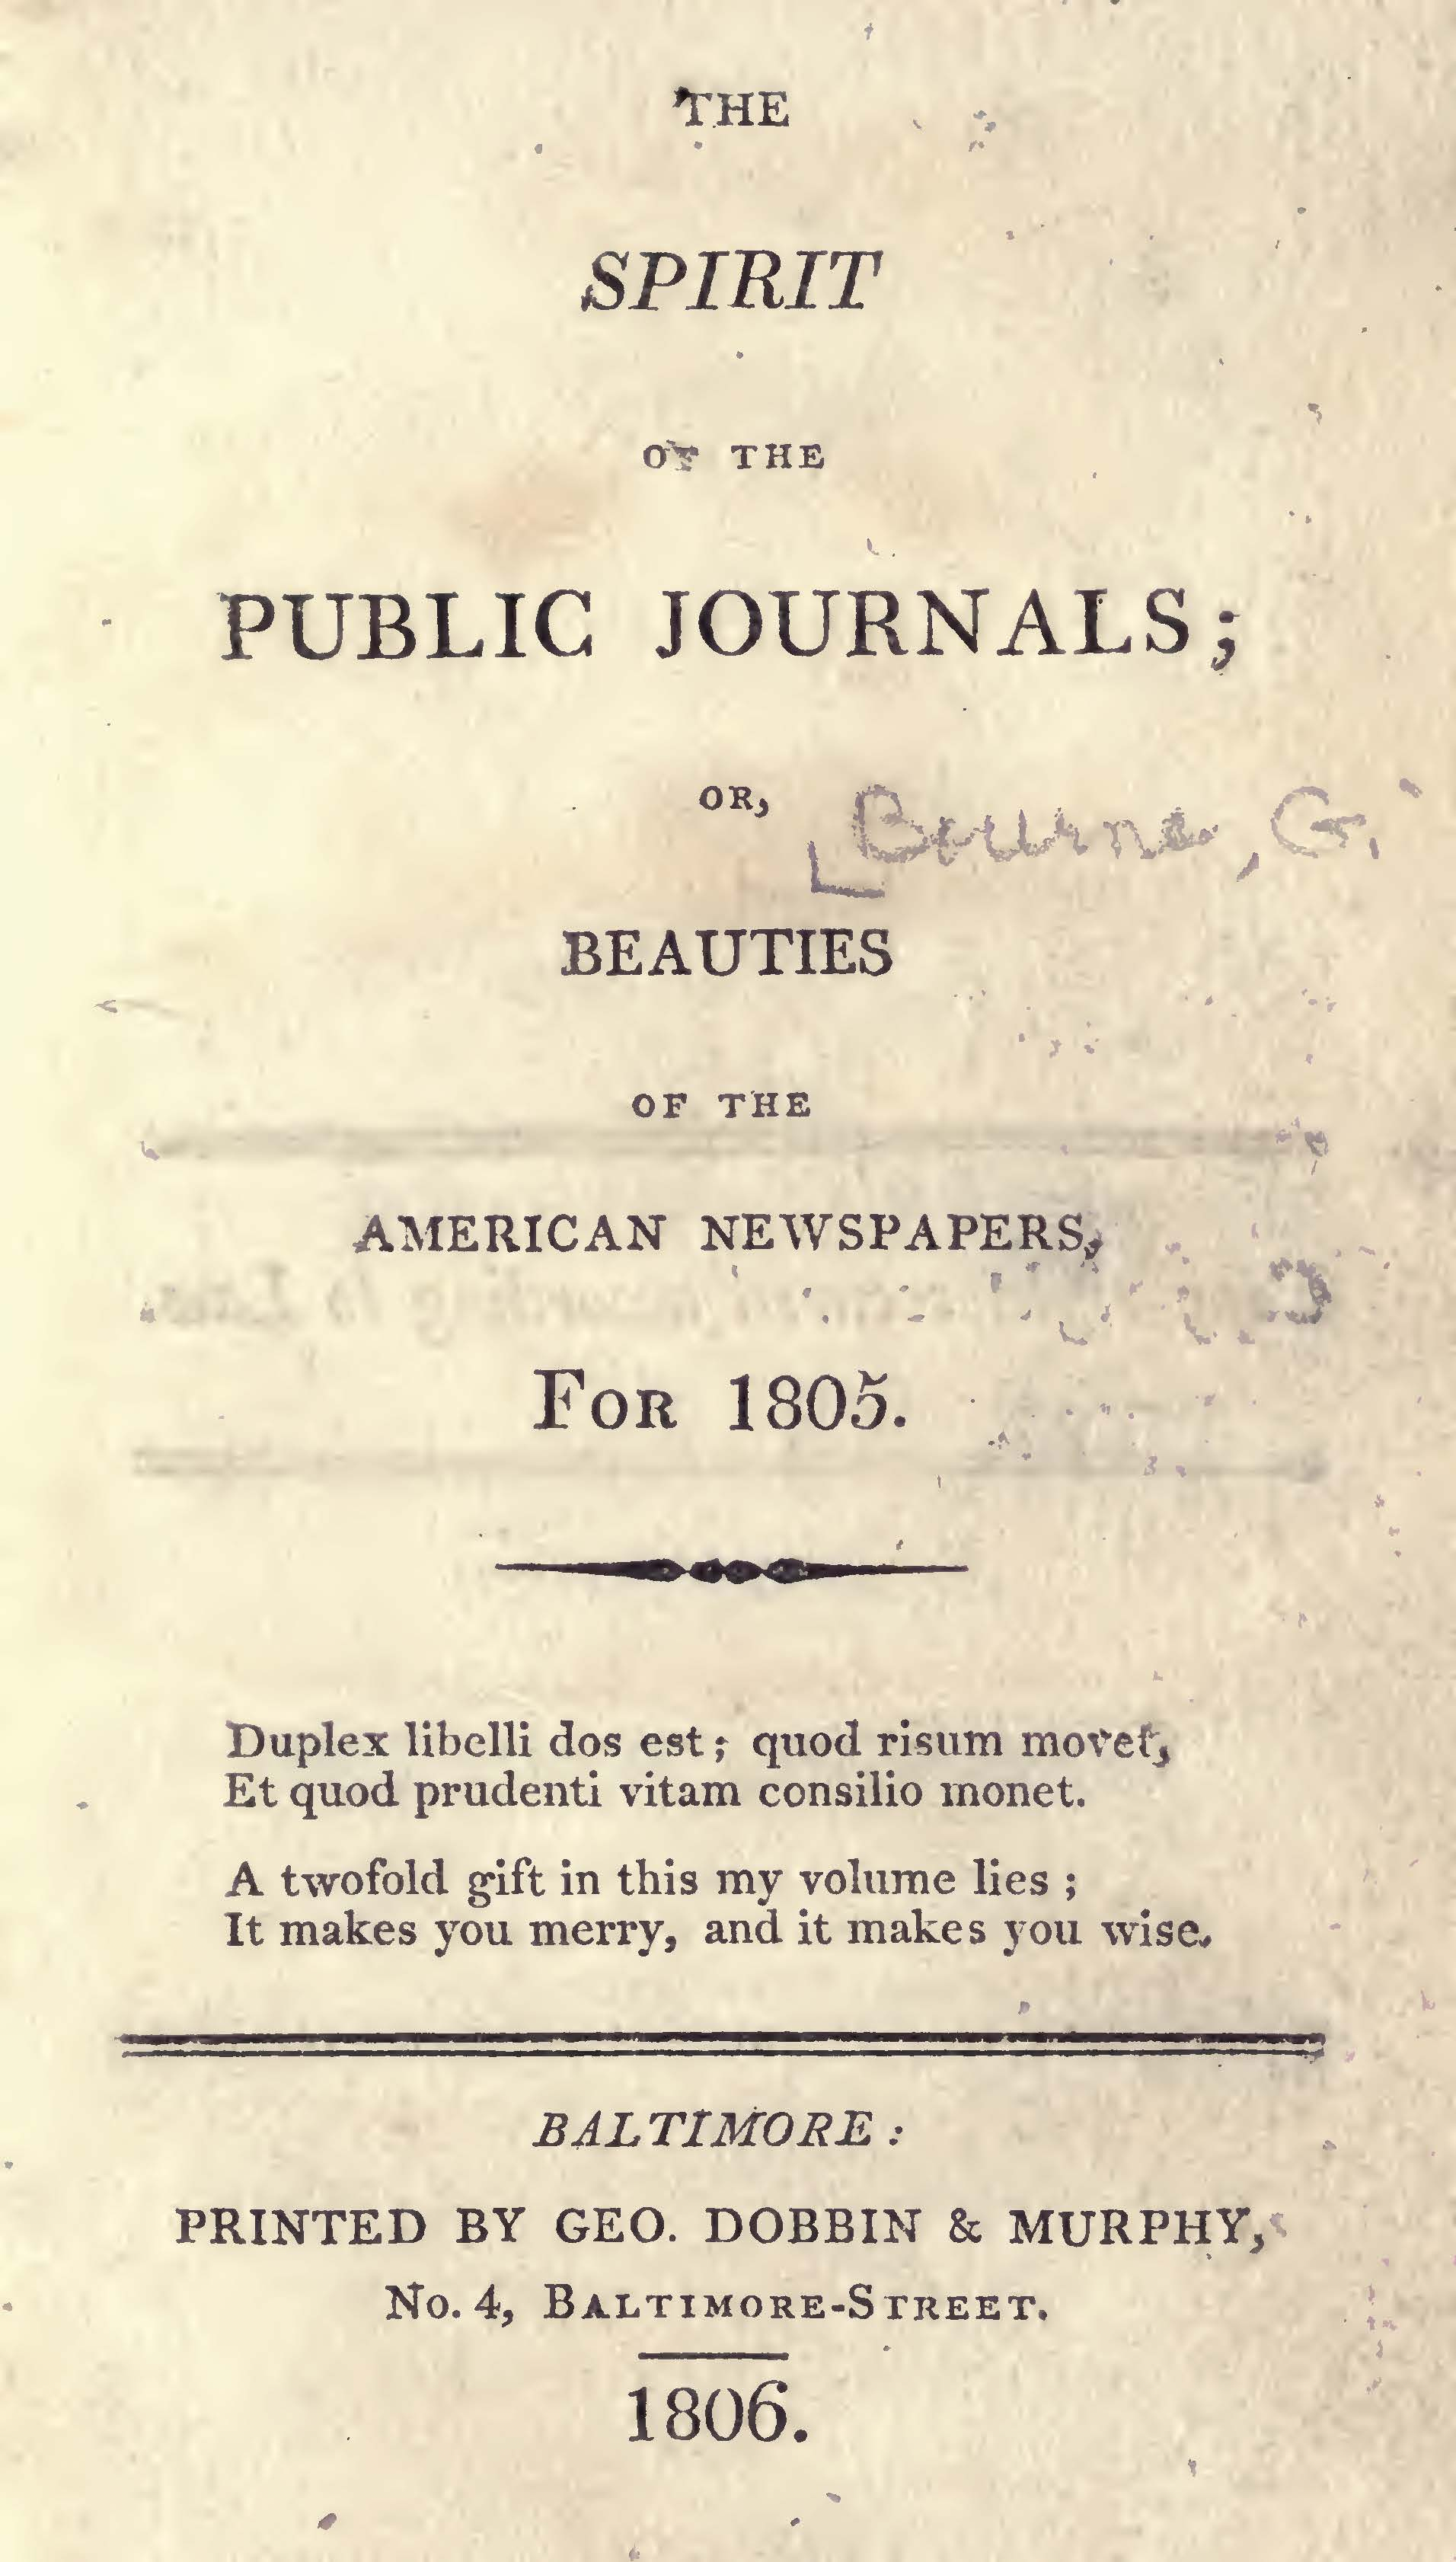 Bourne, George, The Spirit of the Public Journals Title Page.jpg